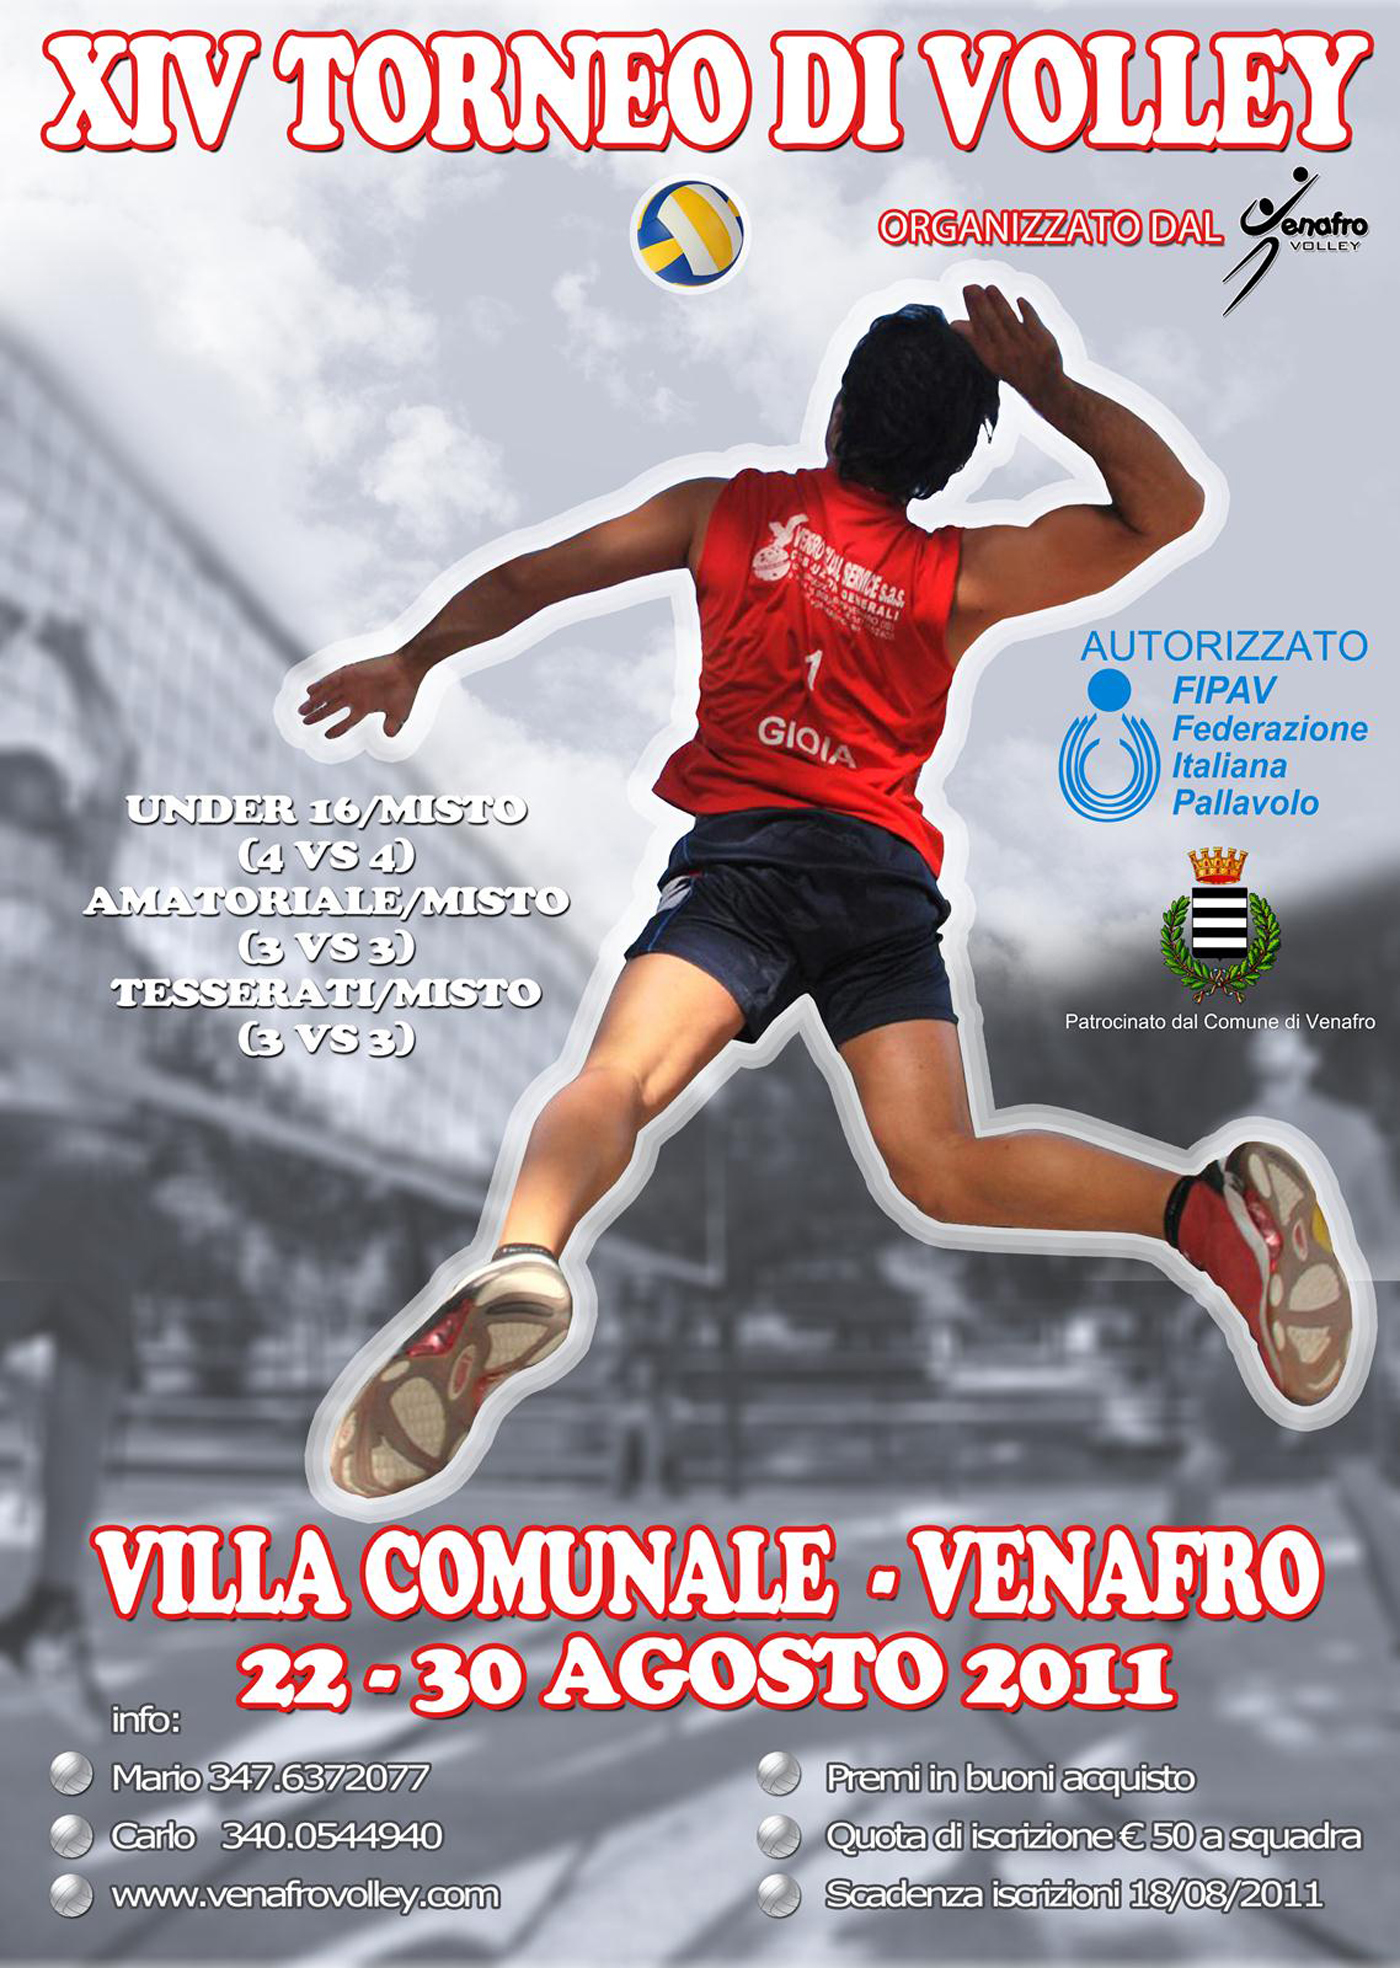 XIV TORNEO DI VOLLEY